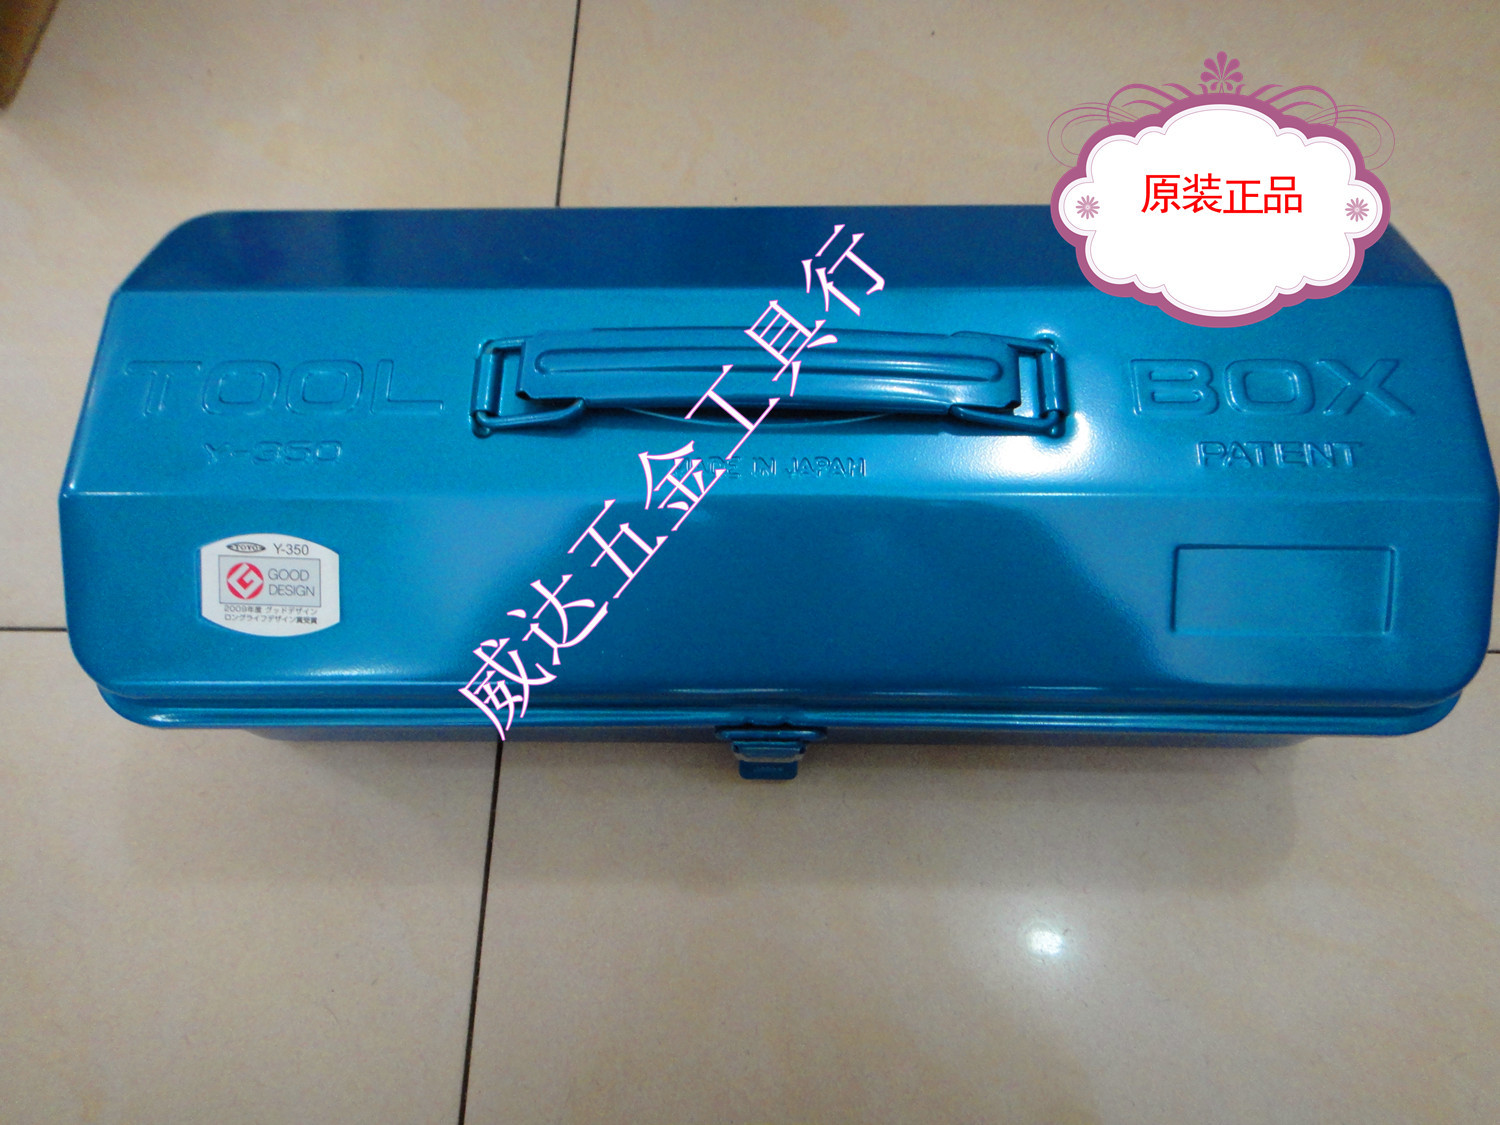 OEM TOYO Japan Toyo high quality iron Y-350 the toolbox toolbox toolbox